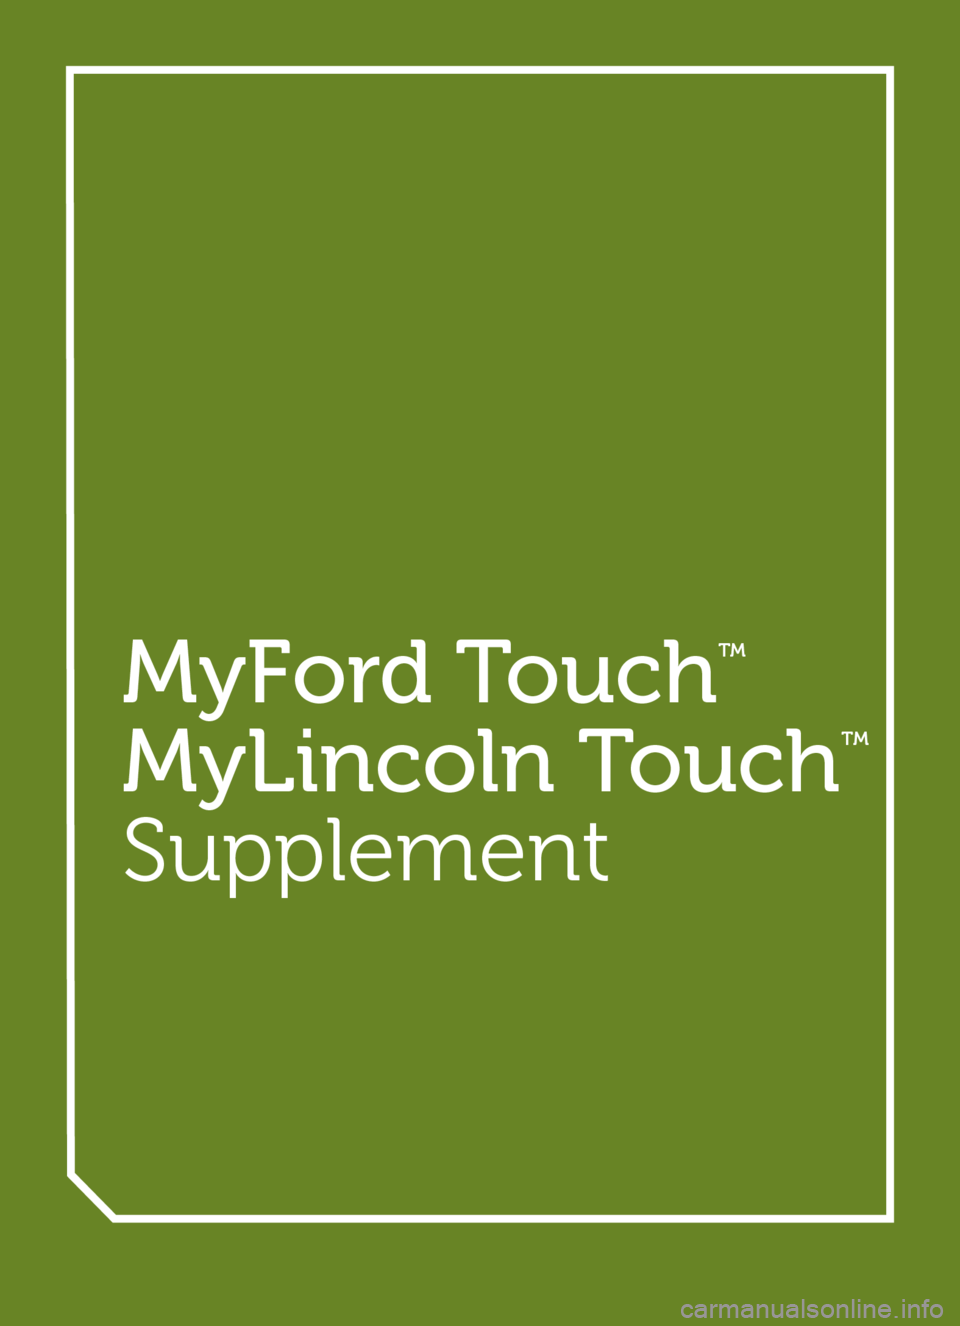 mylincoln touch